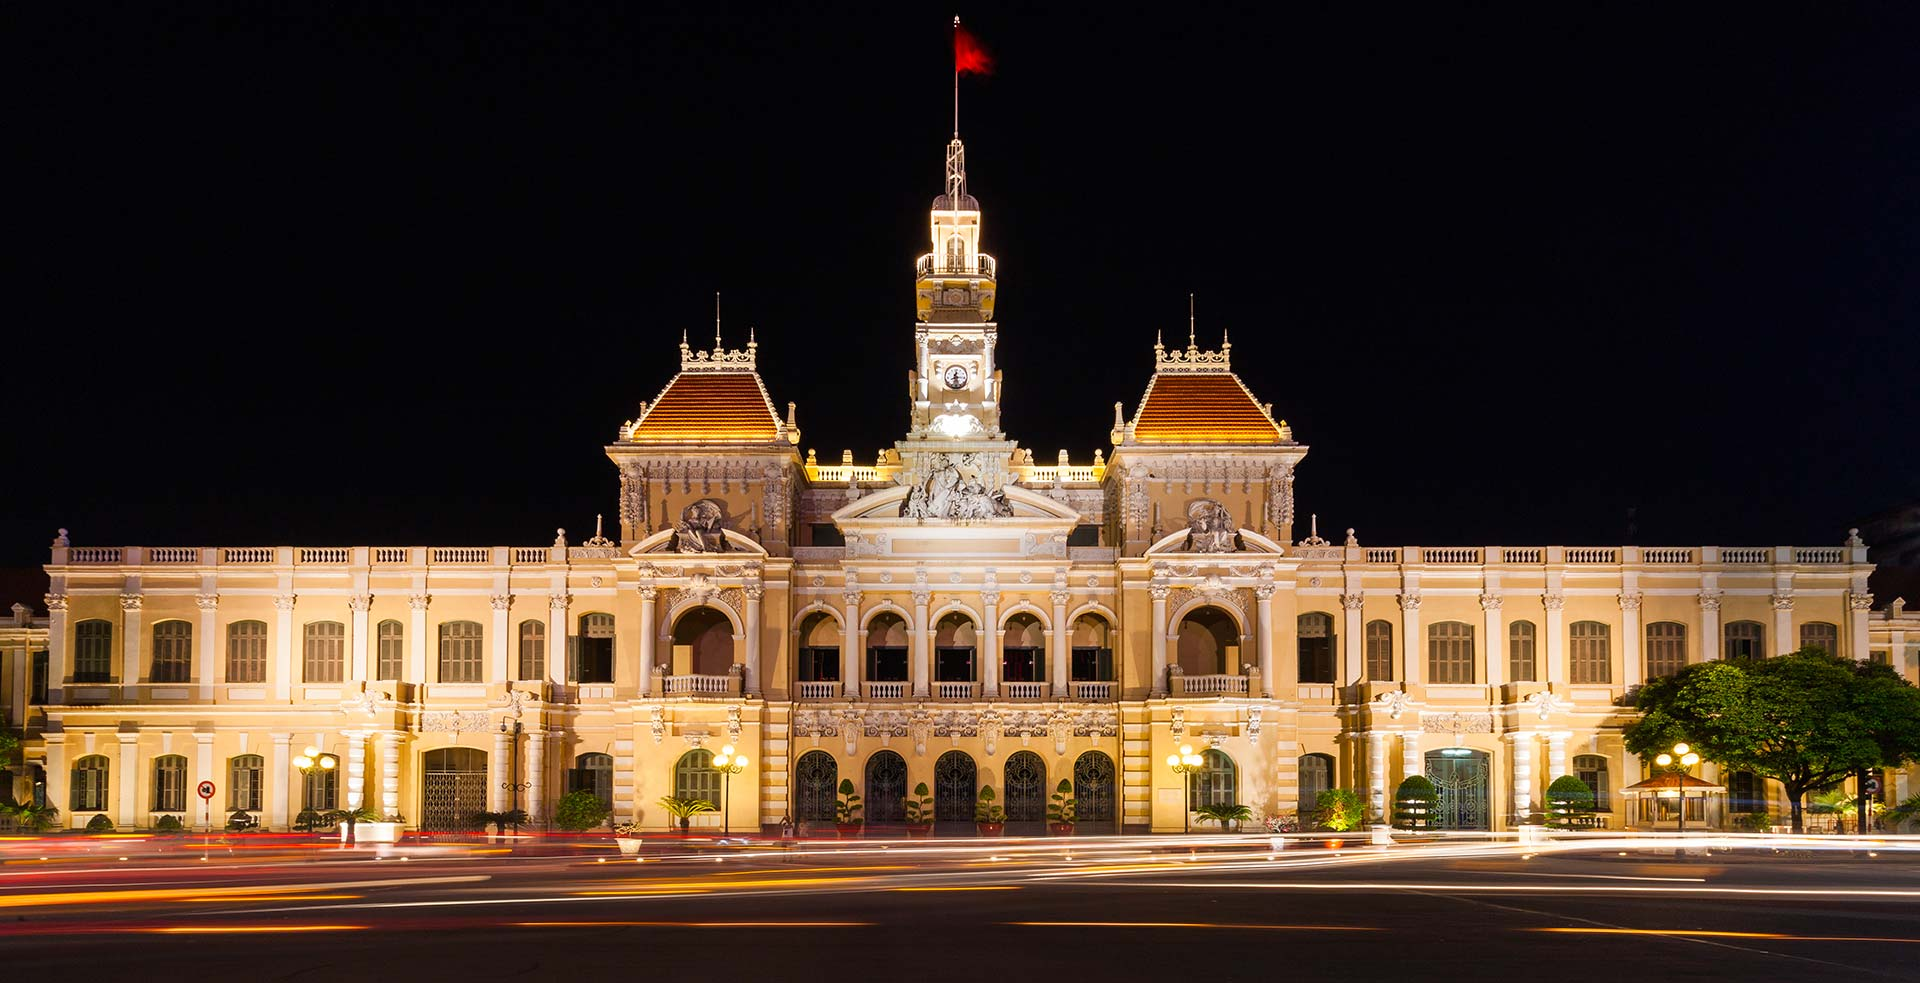 Ho Chi Minh City Hall 1